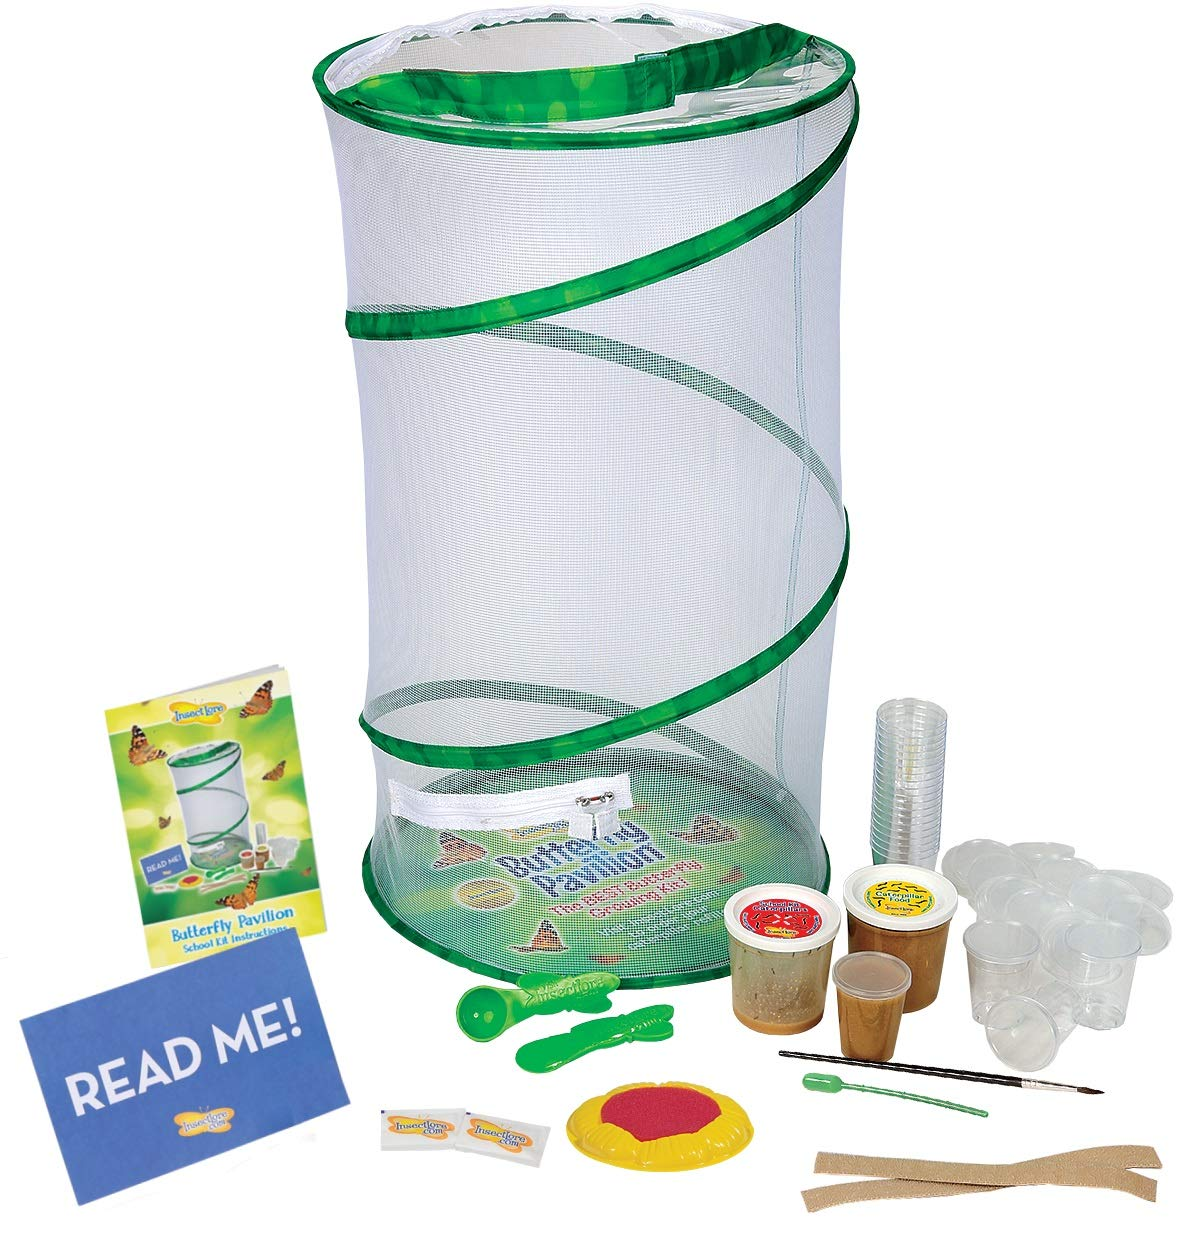 Insect Lore Deluxe School Kit with 33 Live Caterpillars